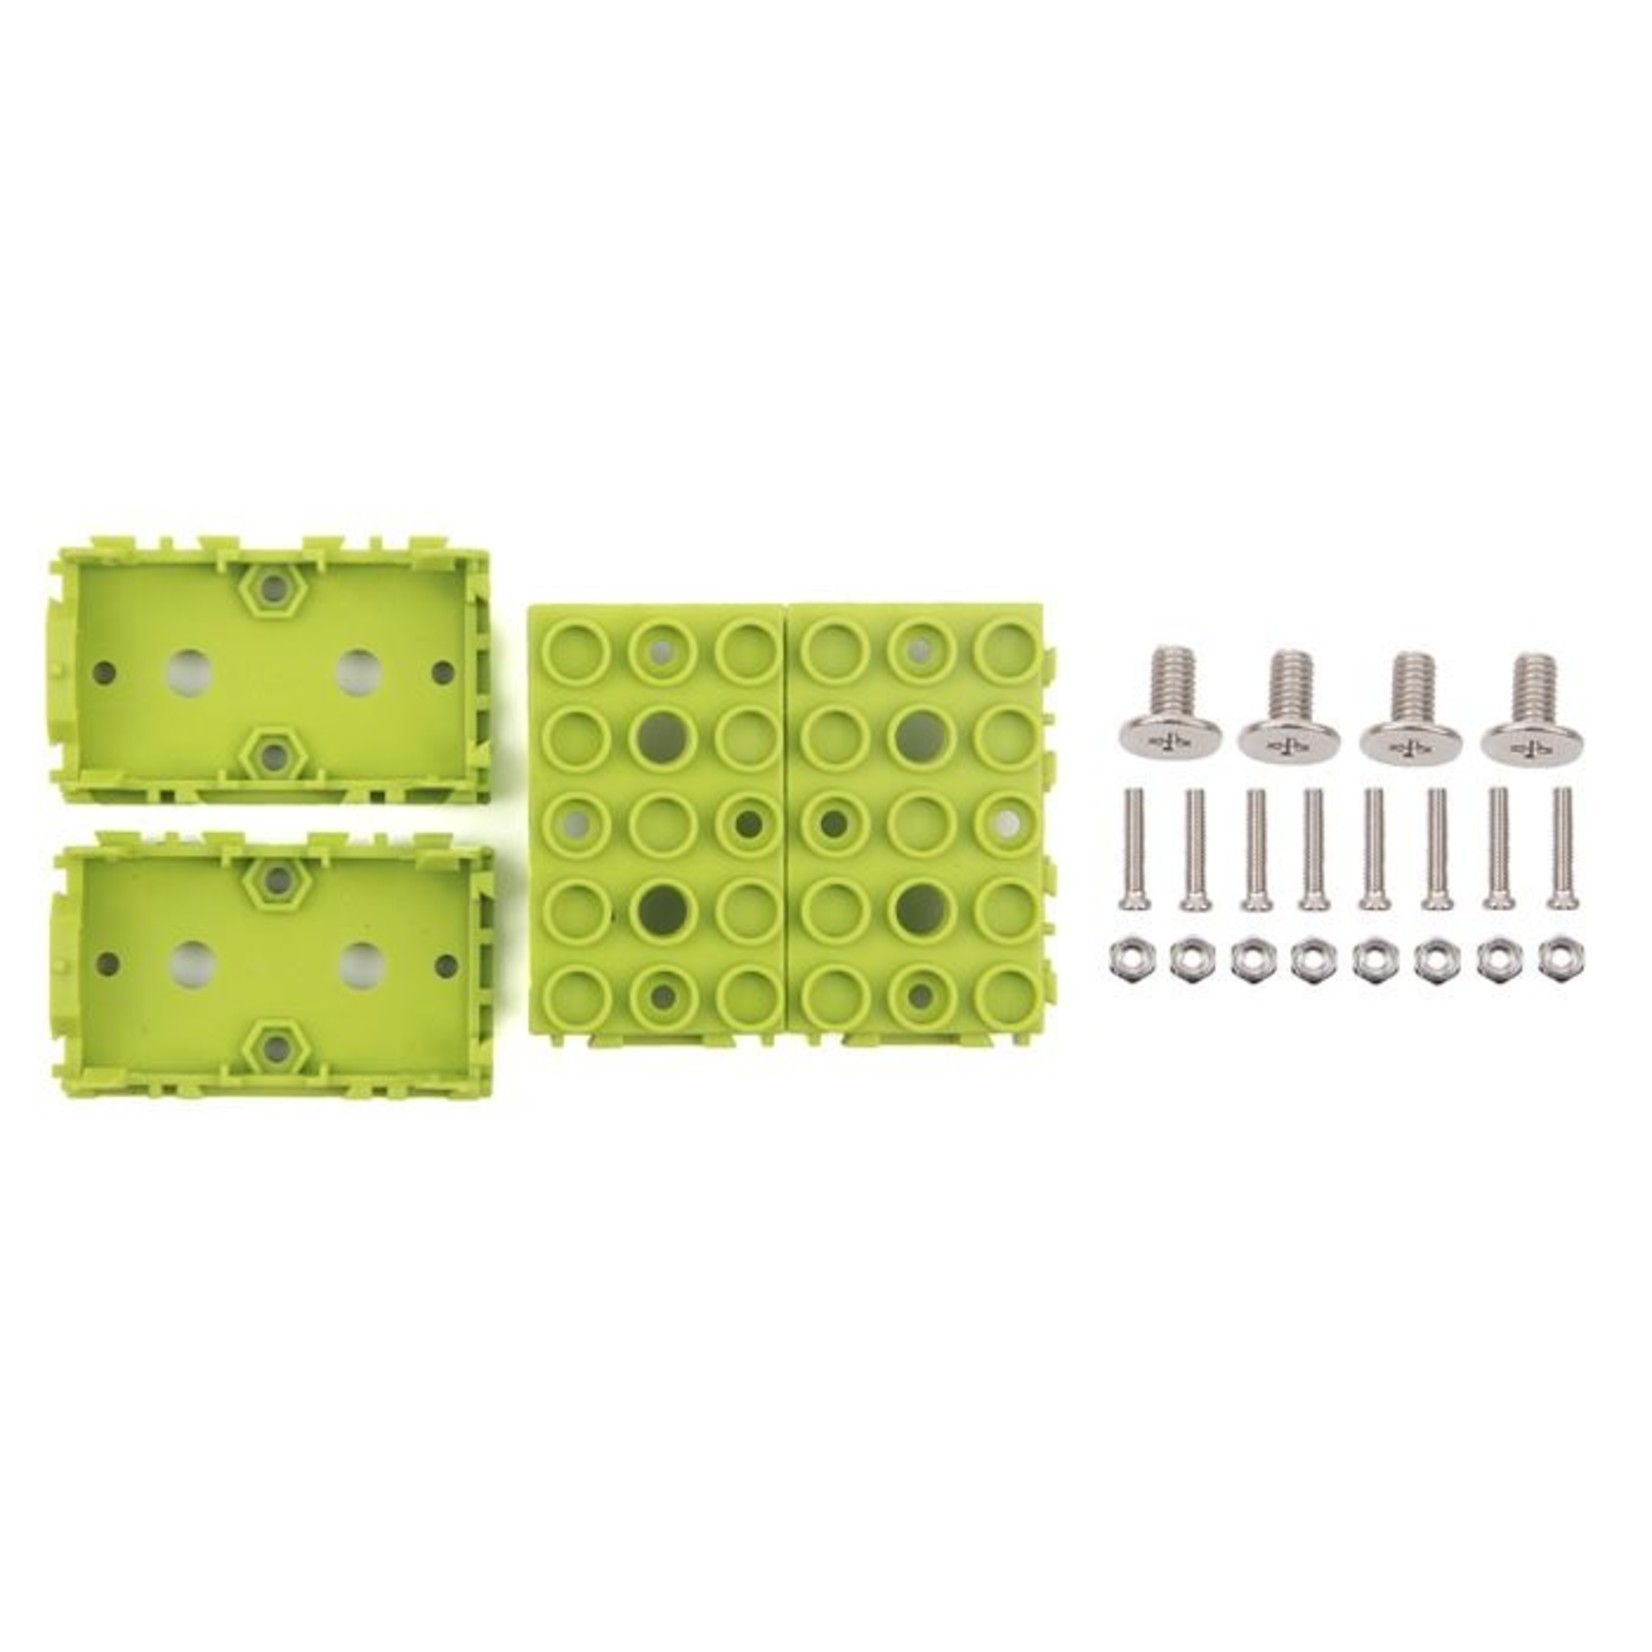 Seeed Grove - Green Wrapper 1*2 (4-pack)